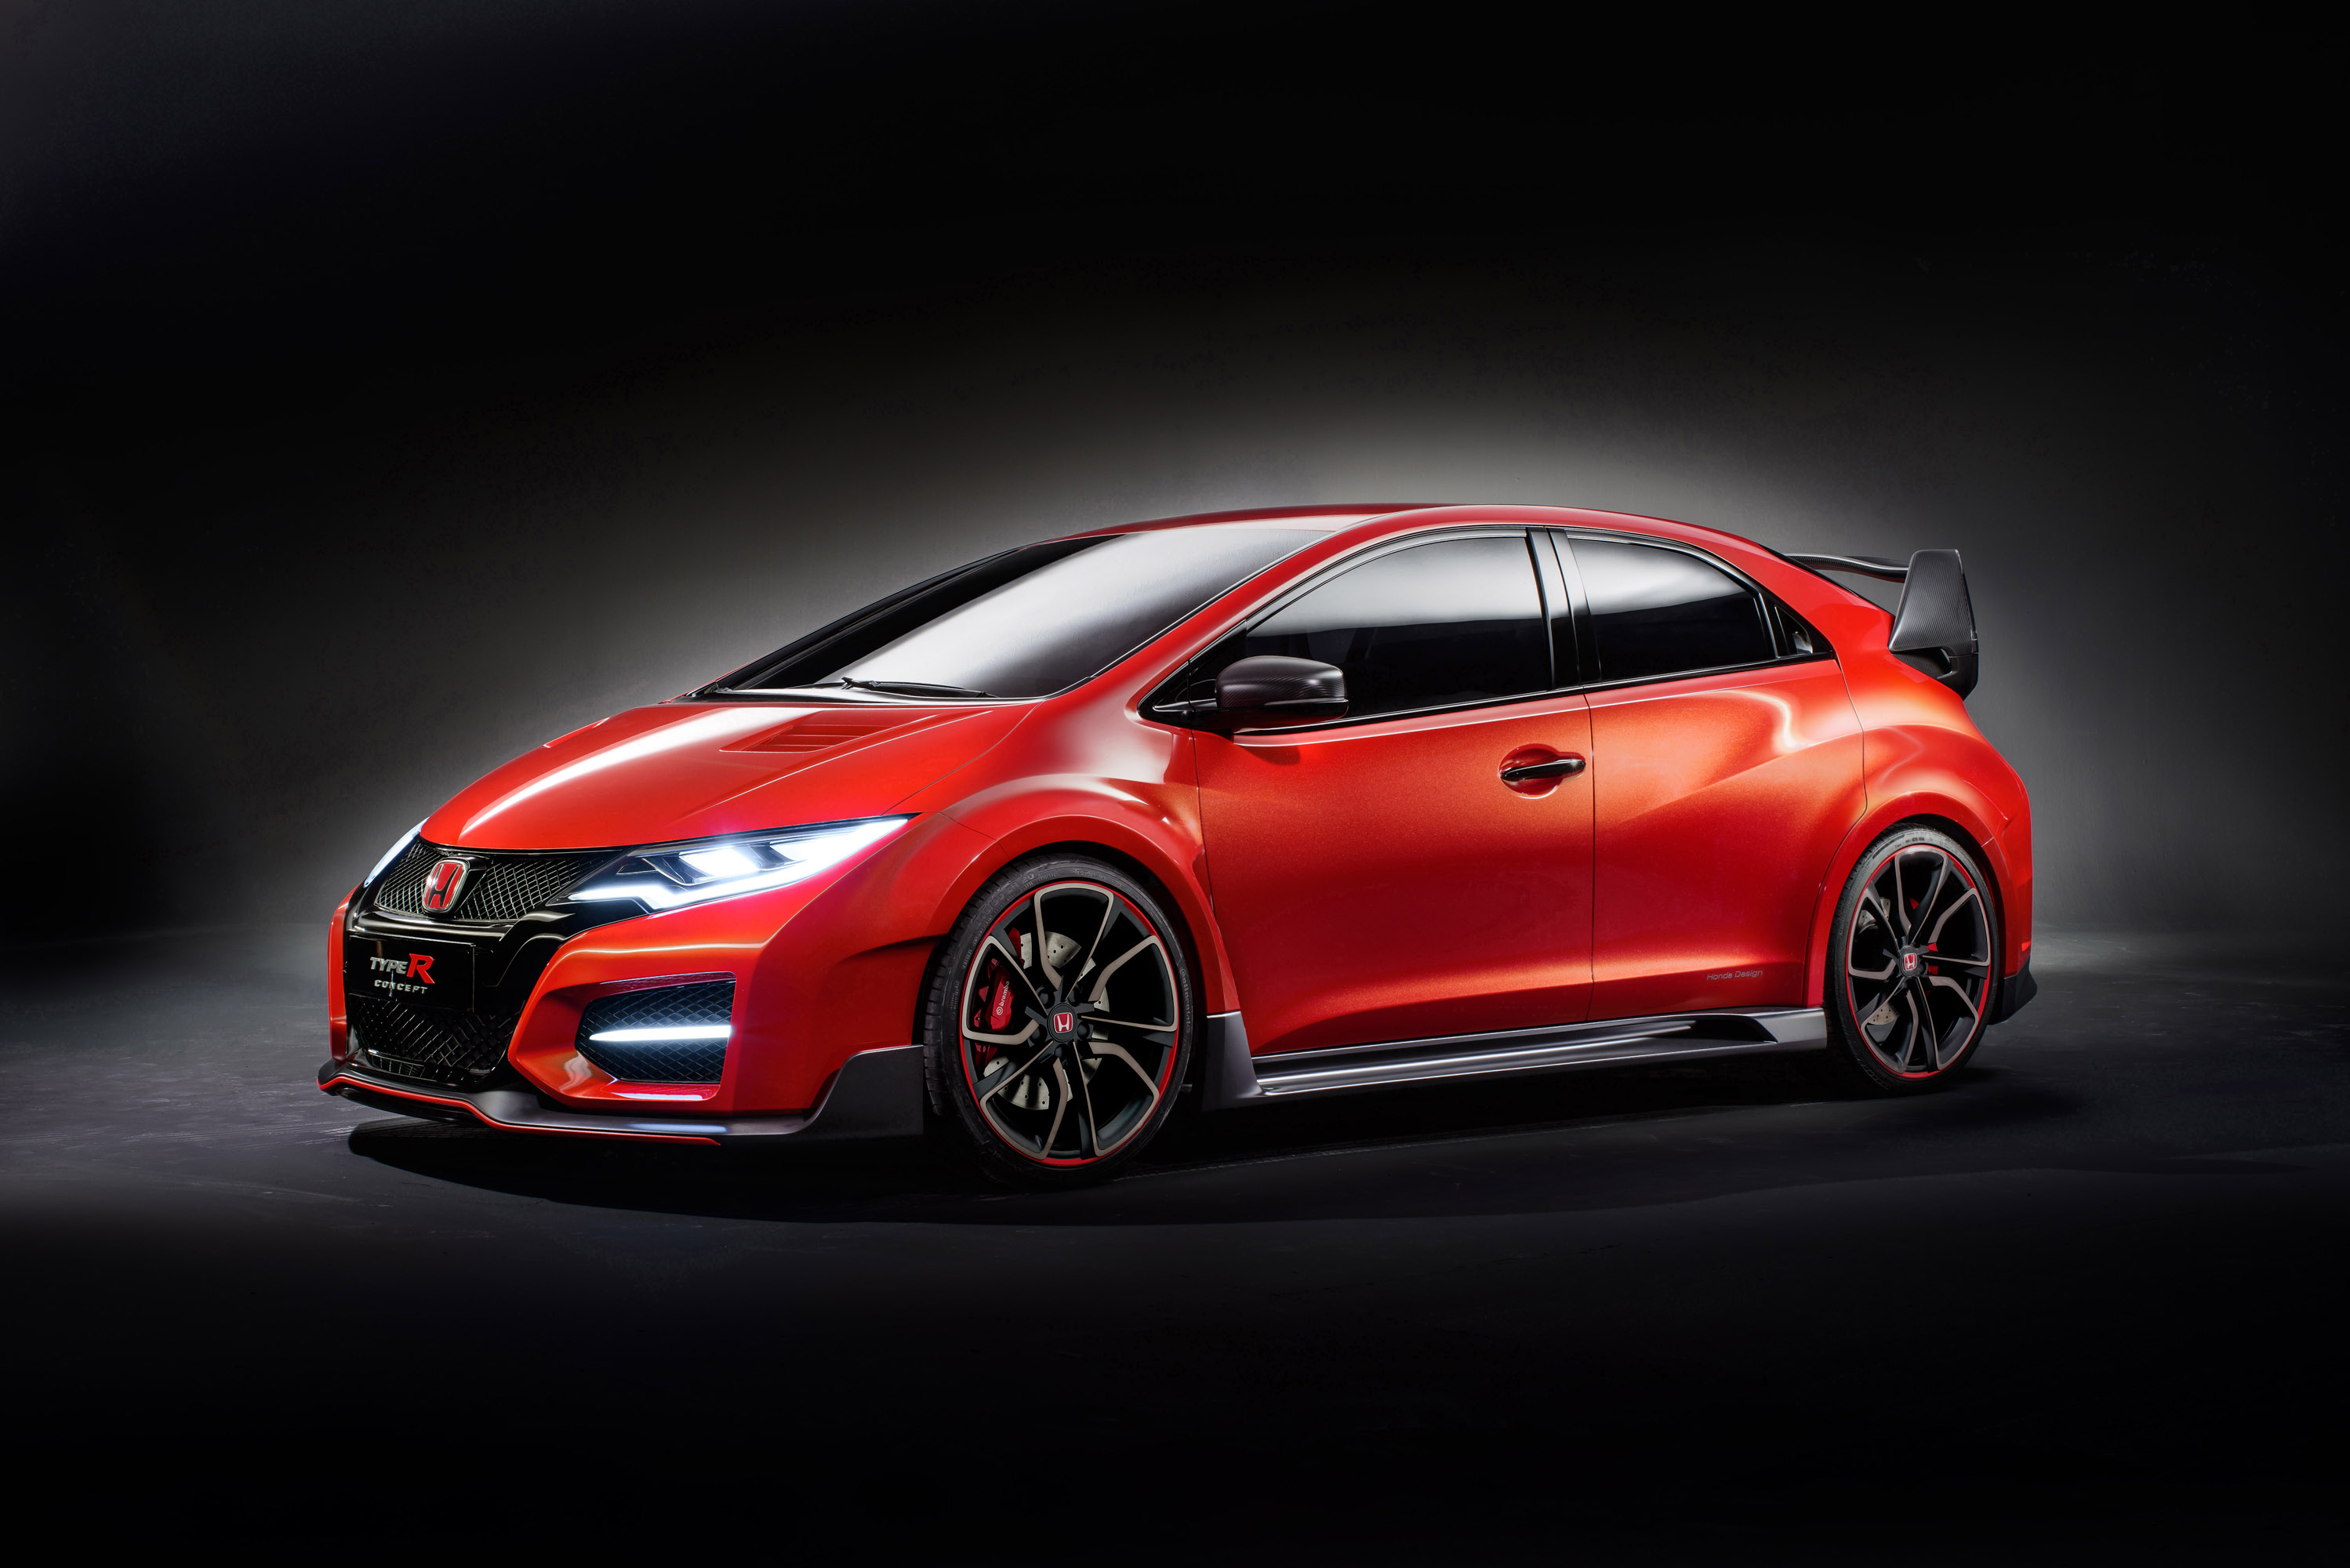 Honda Civic Type R Concept photo #1